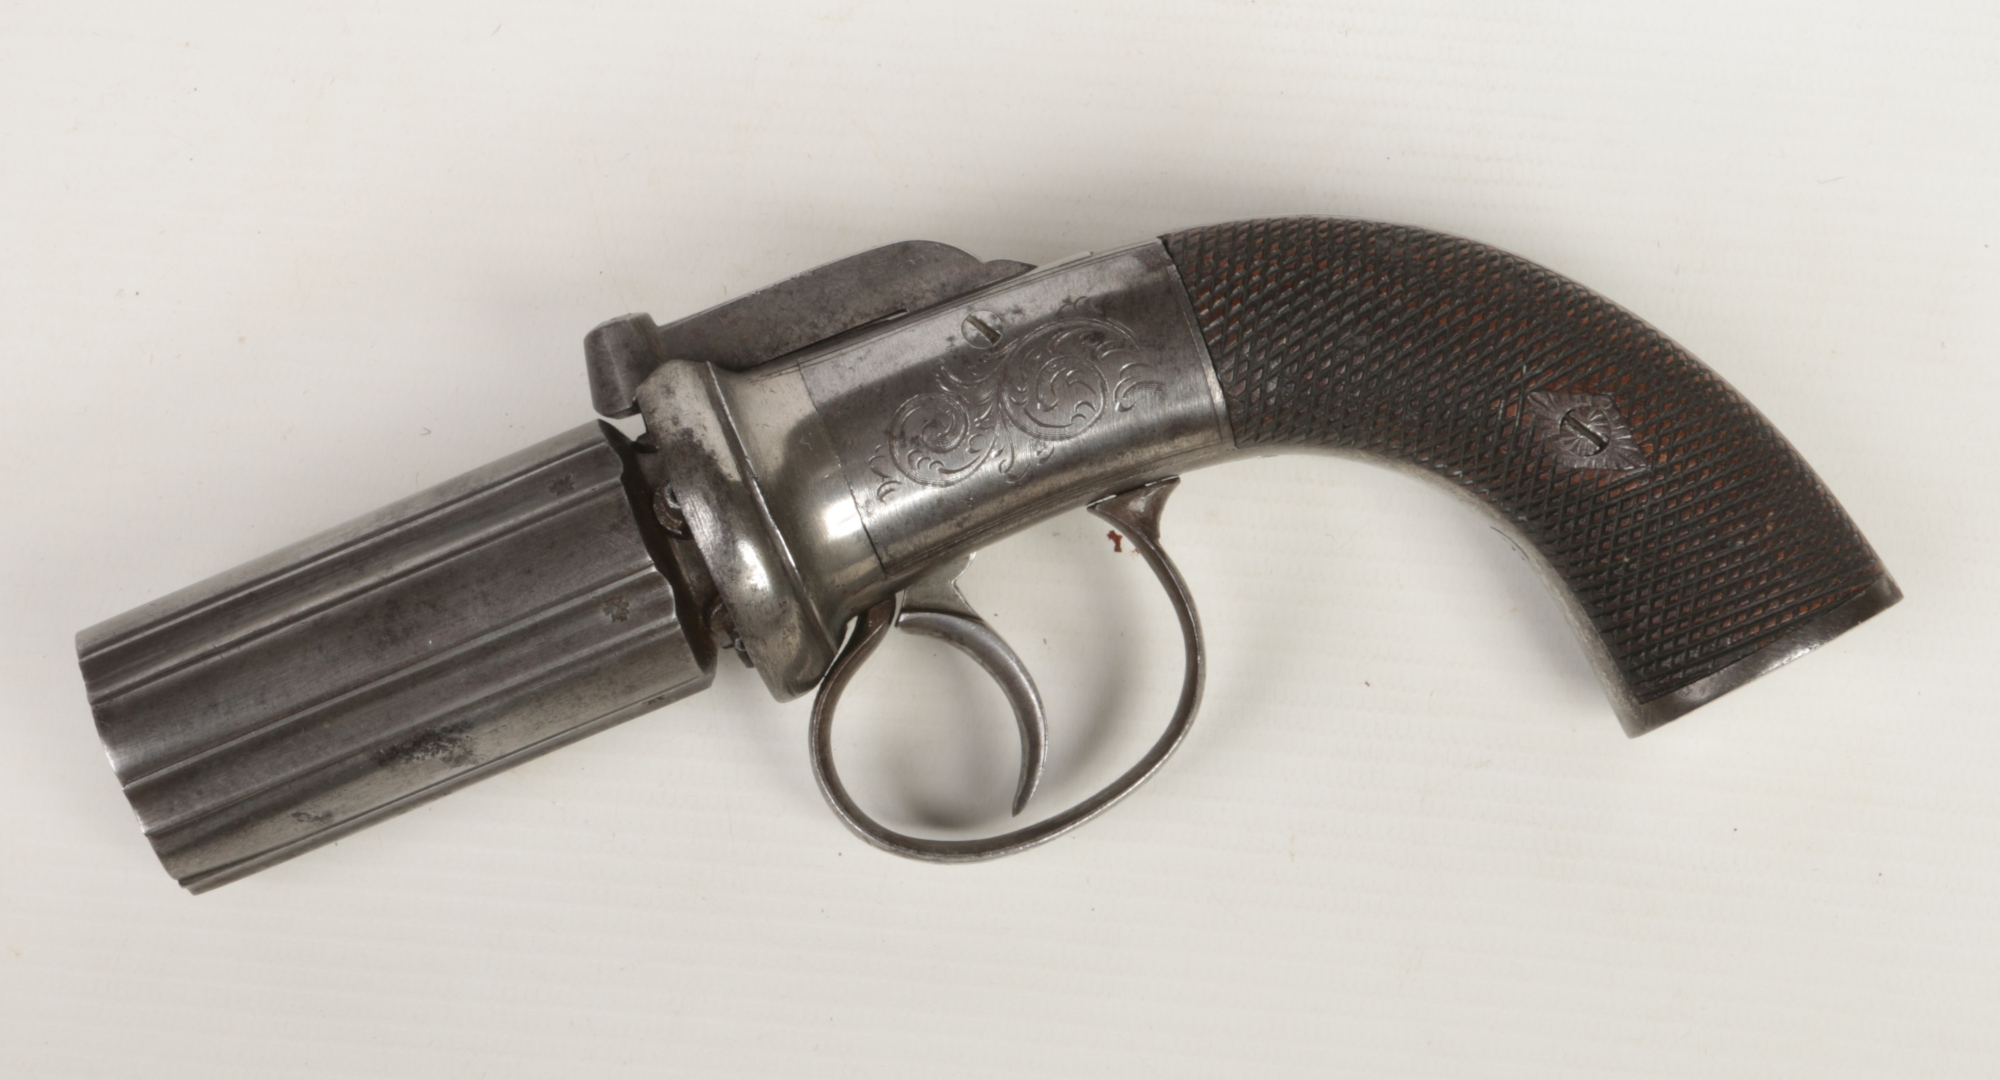 Lot 272 - A mid 19th century six-shot pepperbox revolver. With fluted barrels, engraved round action, tang and